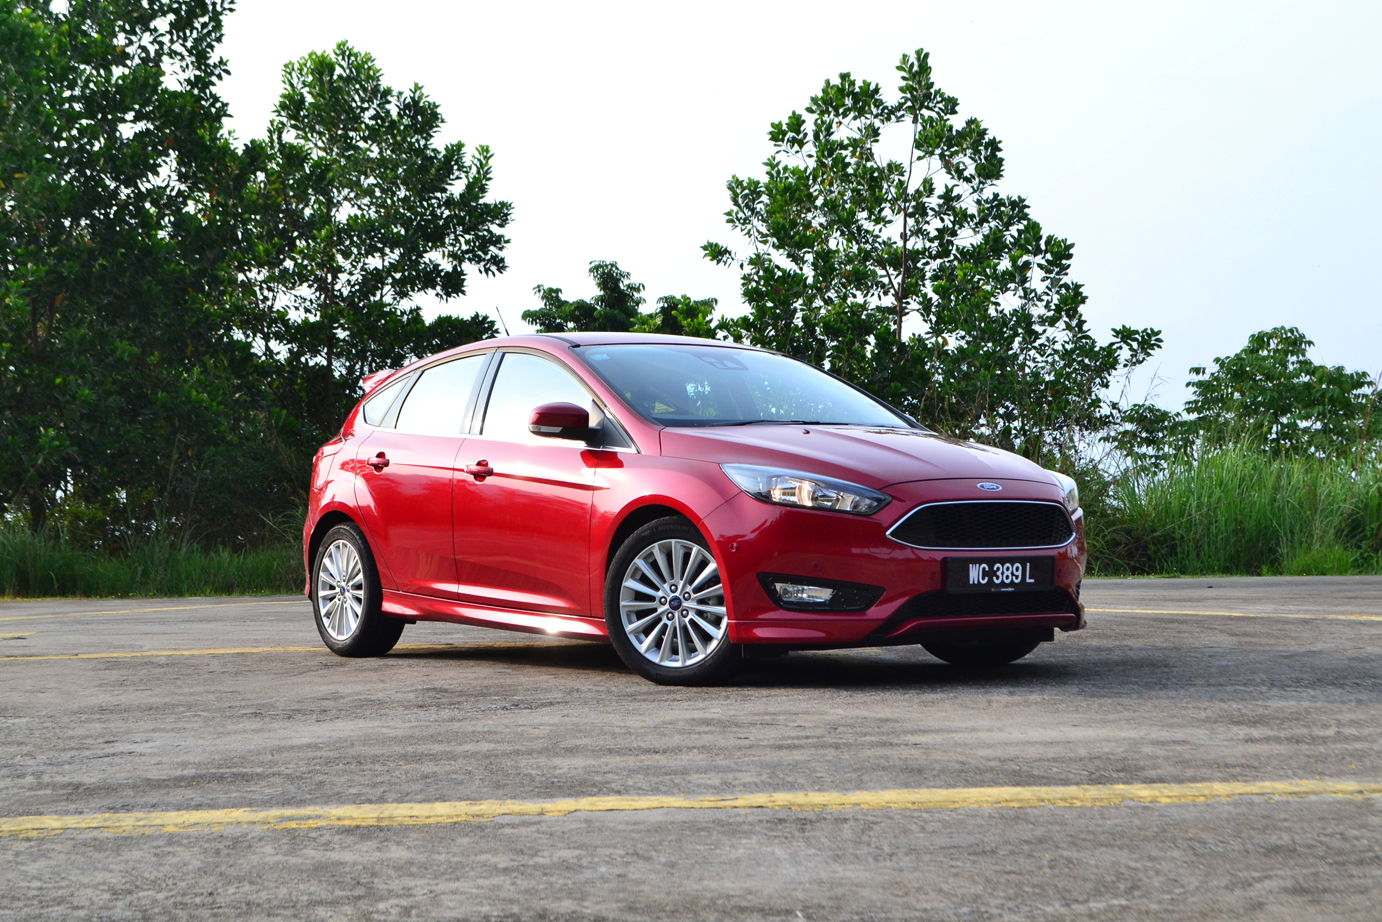 the new ford focus sport+ - the best hatchback under rm150k